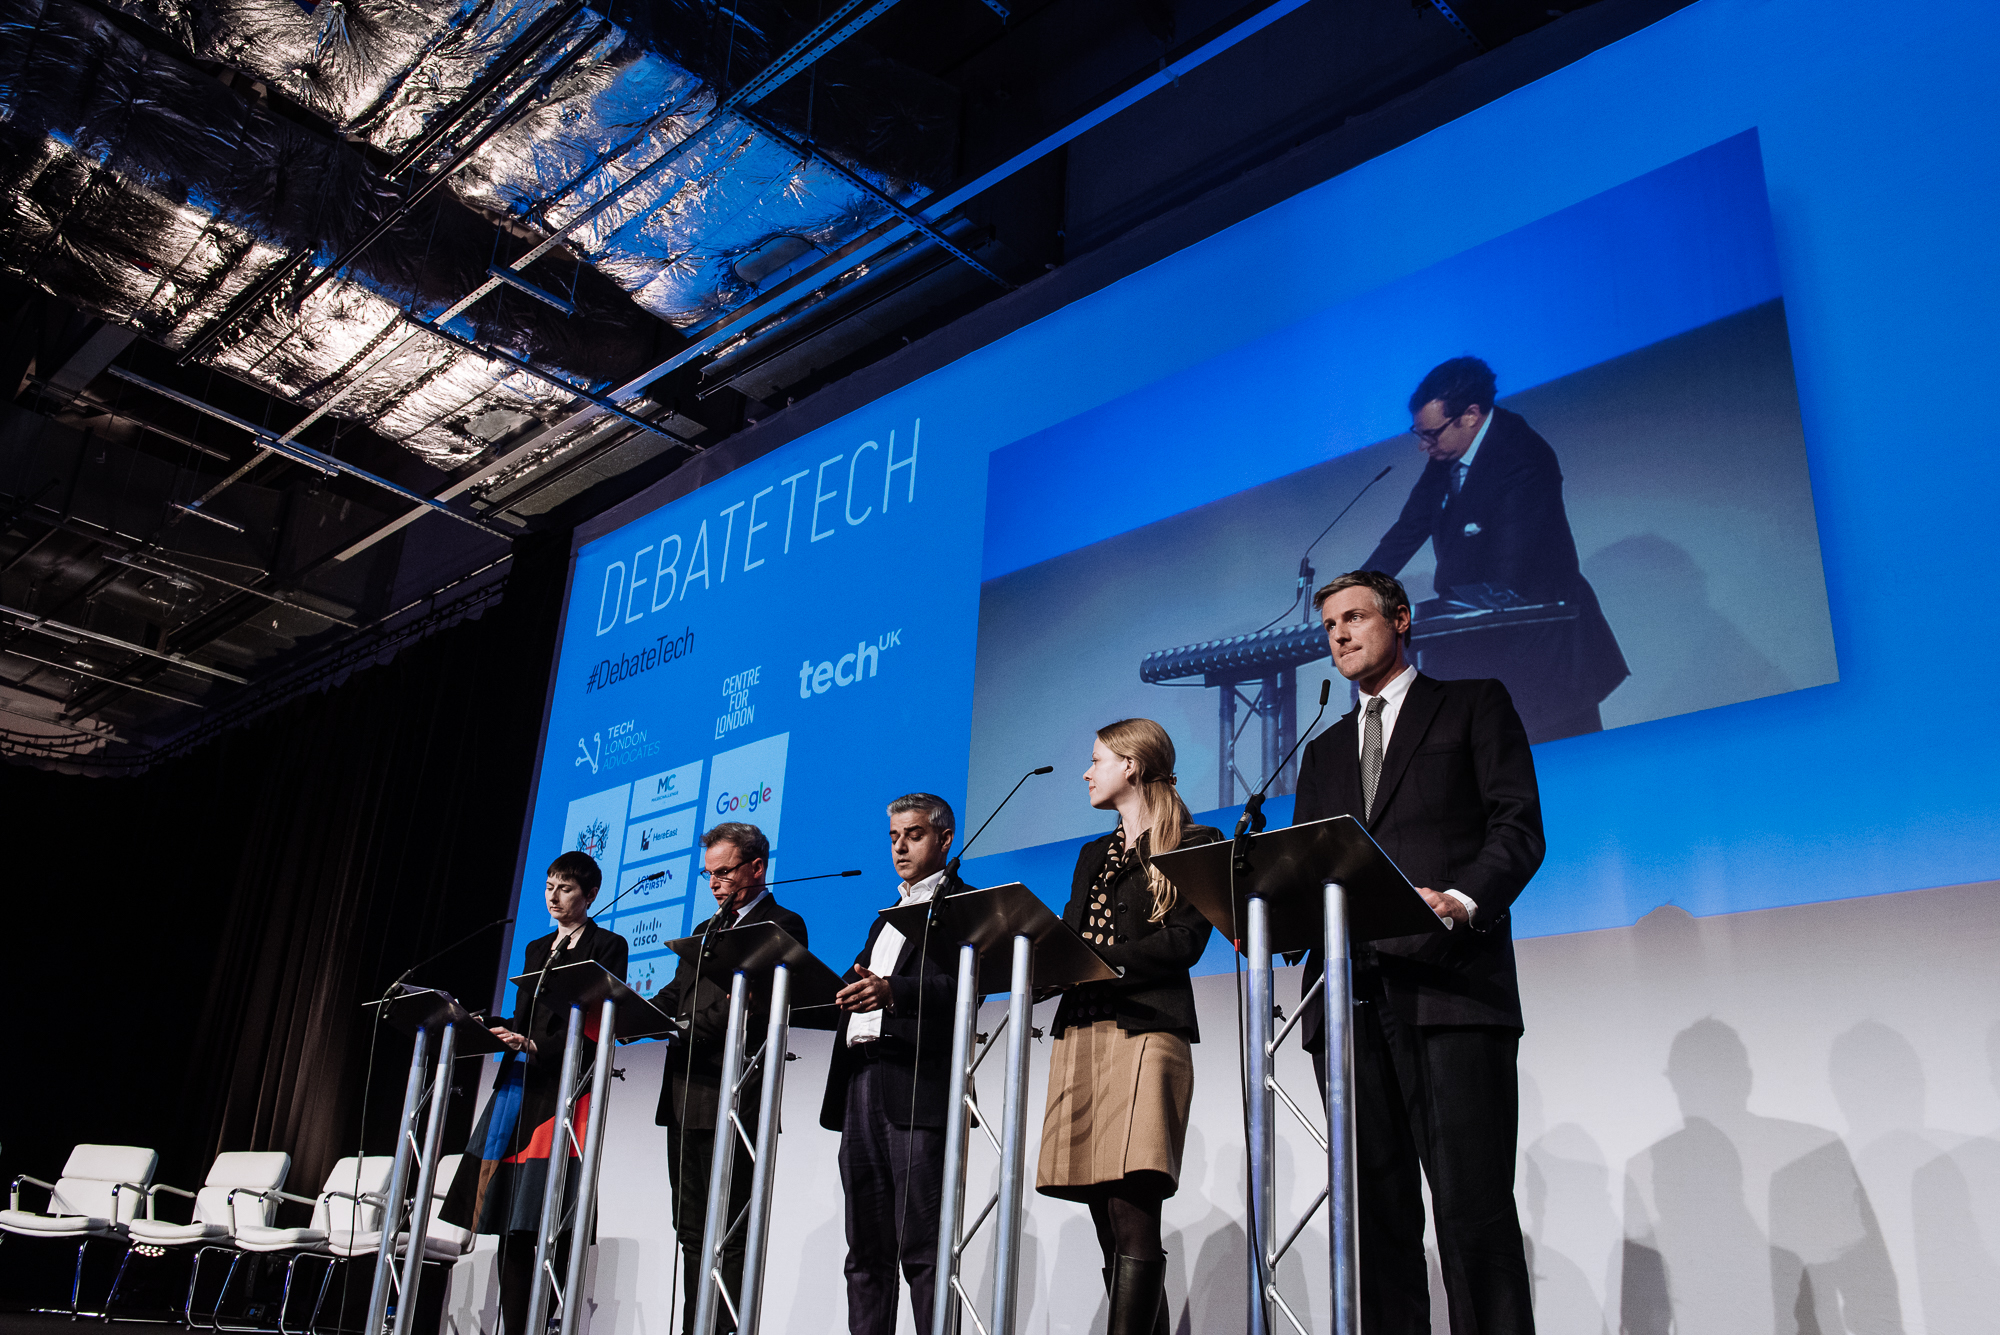 The London mayoral election 2016: What will candidates do for the capital's tech sector?